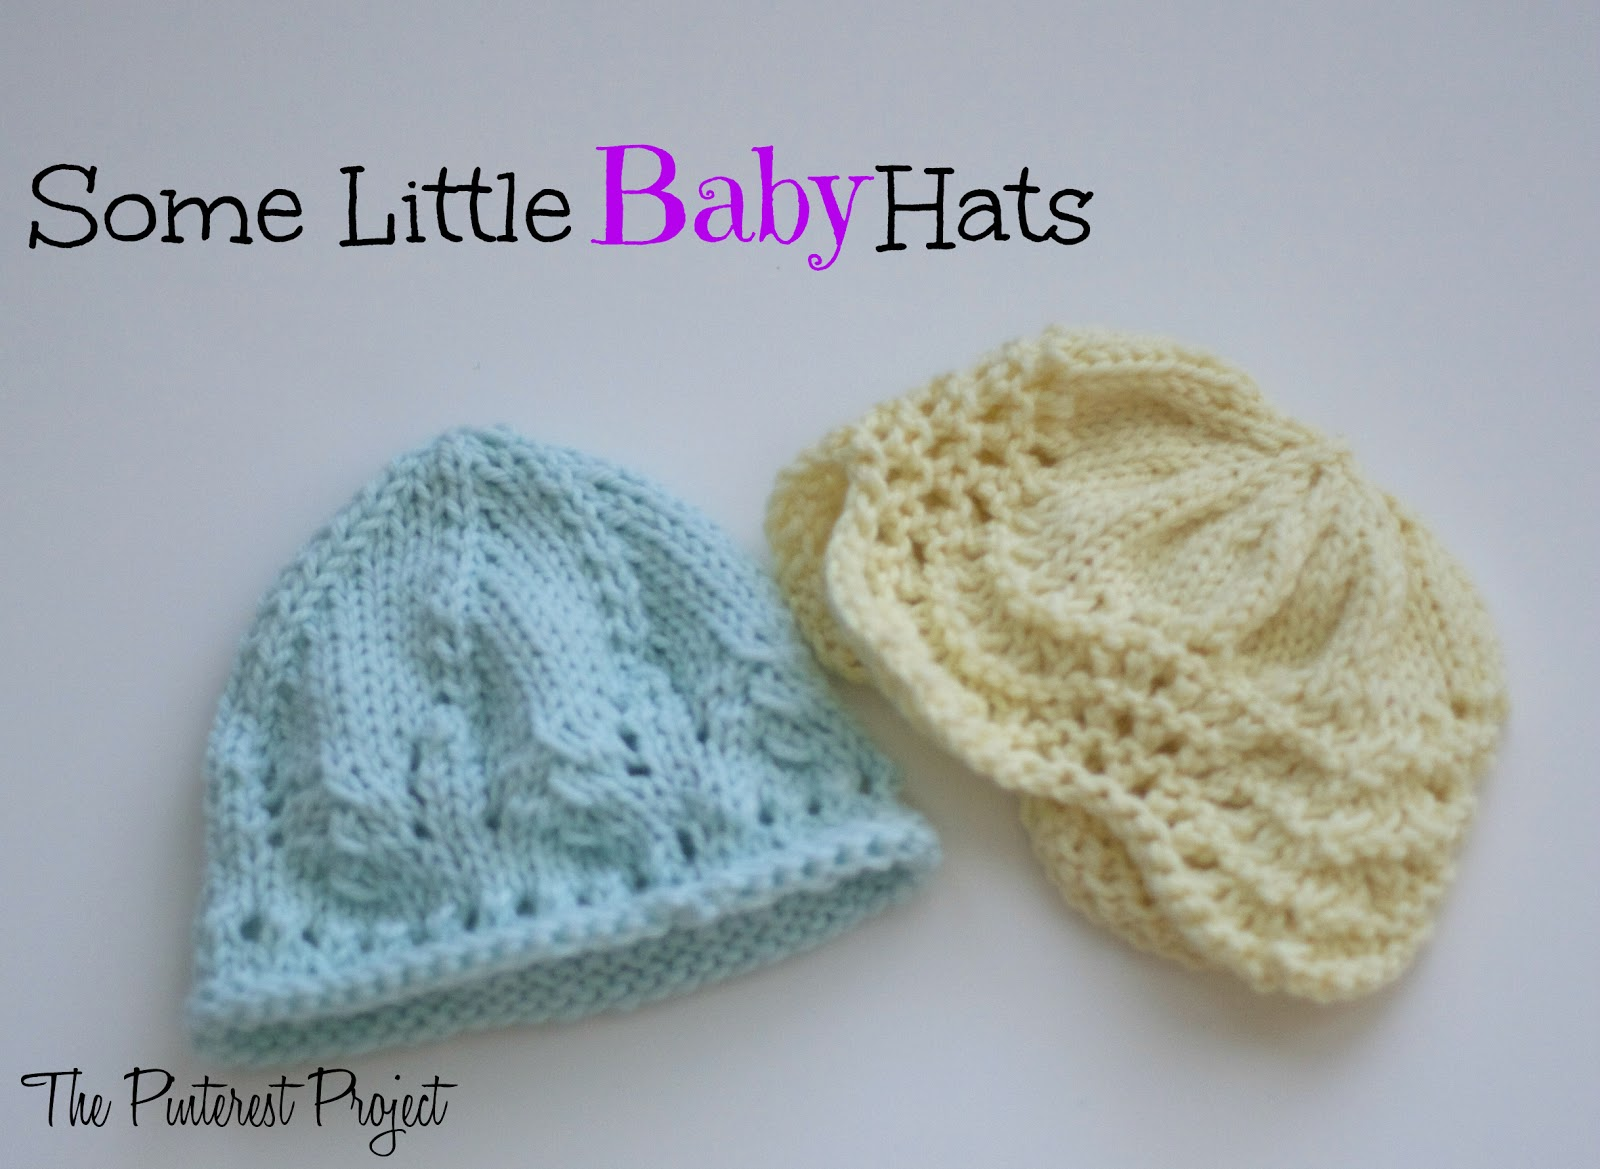 Knitting Patterns Baby Pinterest : Some Knit Baby Hats The Pinterest Project